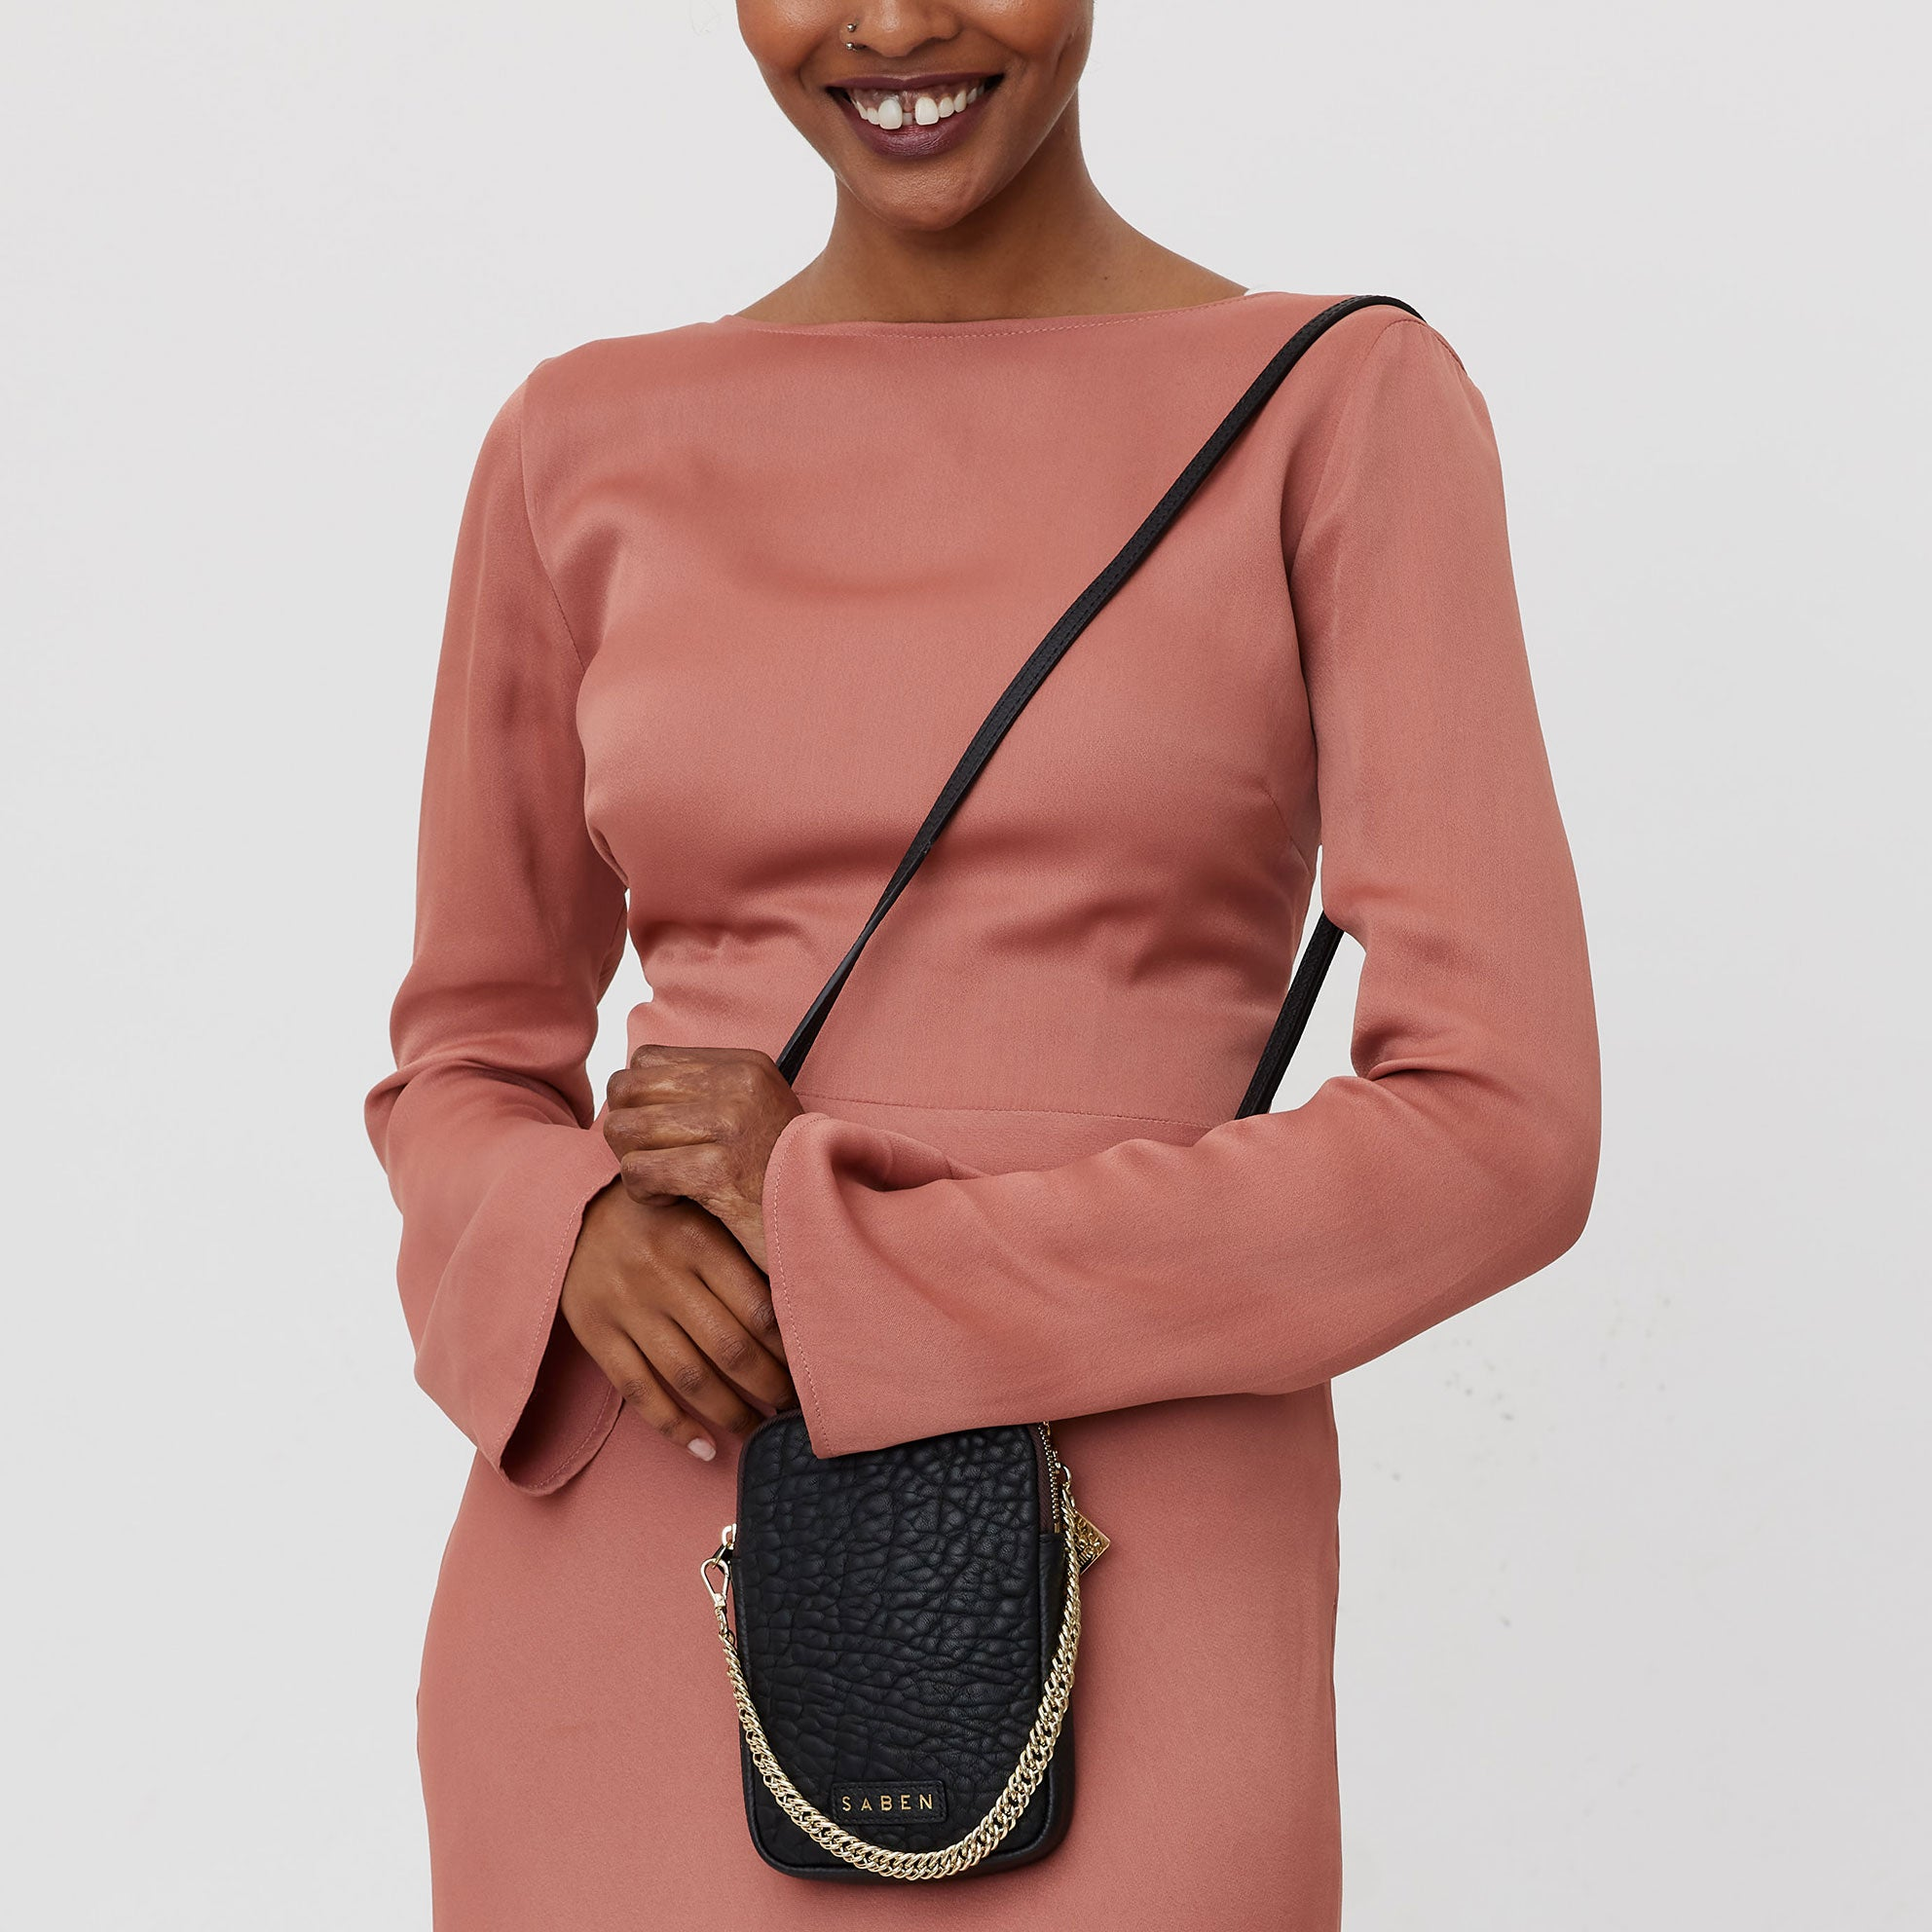 saben model wears the feature handle gold designed in New Zealandsaben handbag feature handle is designed in New Zealand and a perfect accessory for any handbag